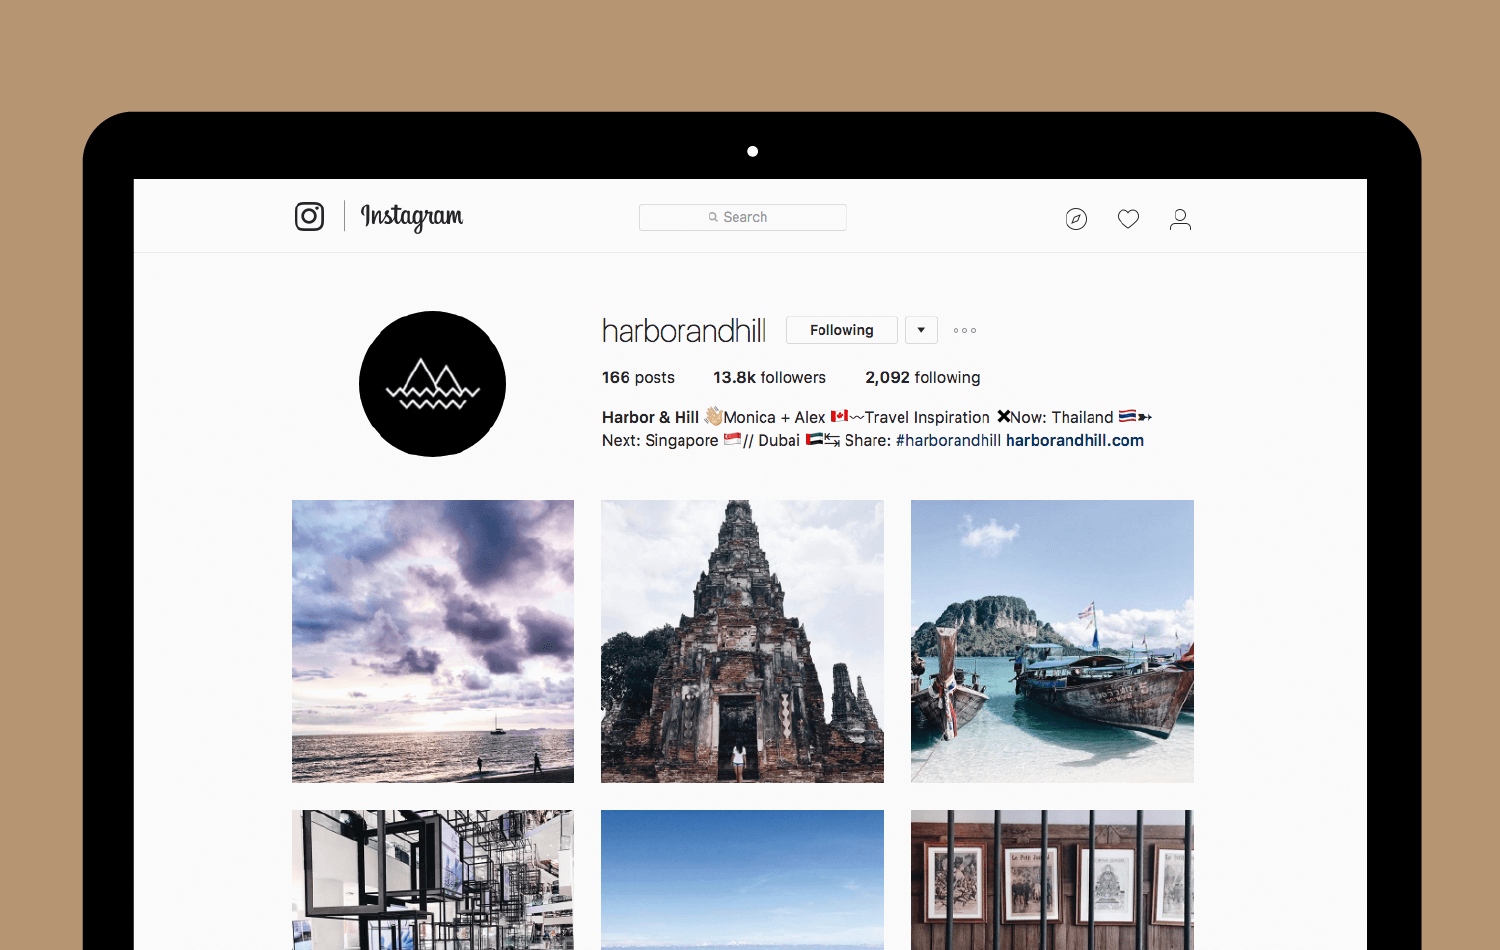 Harbor & Hill Instagram account